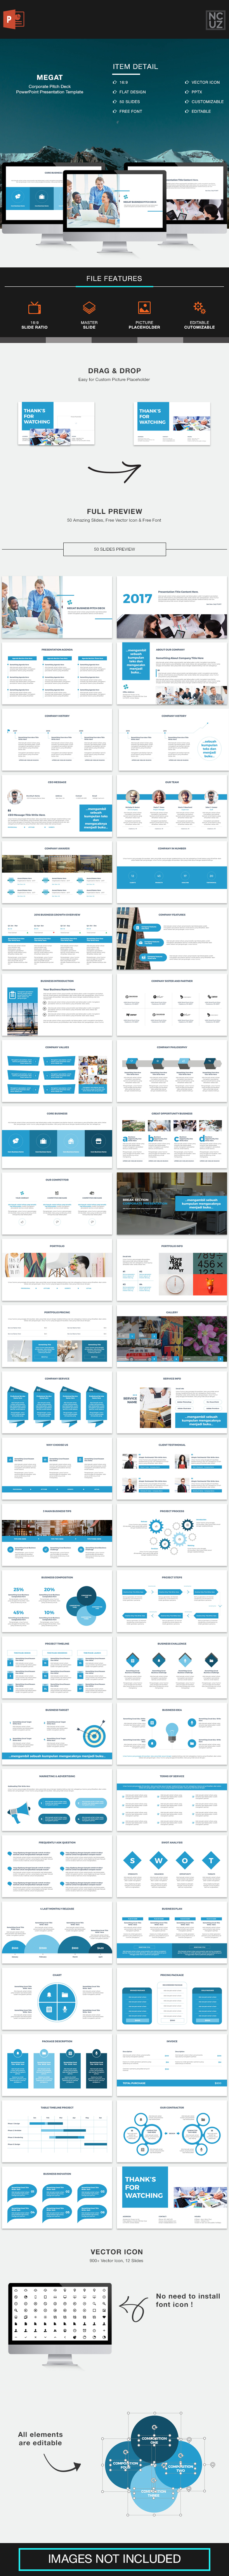 Megat Corporate Pitch Deck PowerPoint Template - Pitch Deck PowerPoint Templates